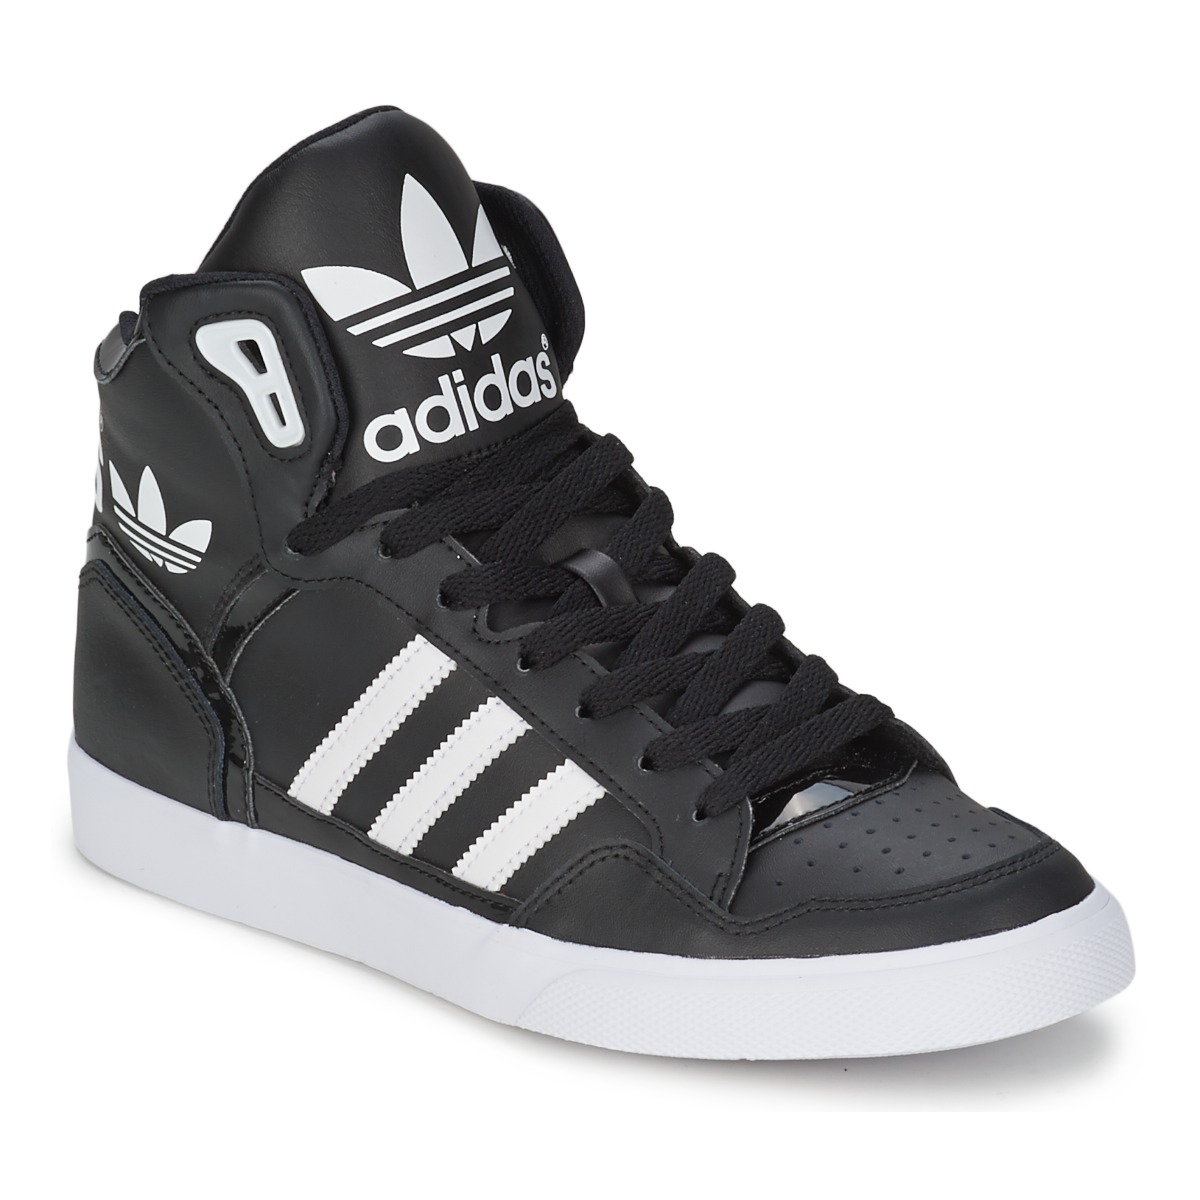 adidas superstar hommes chaussures montantes